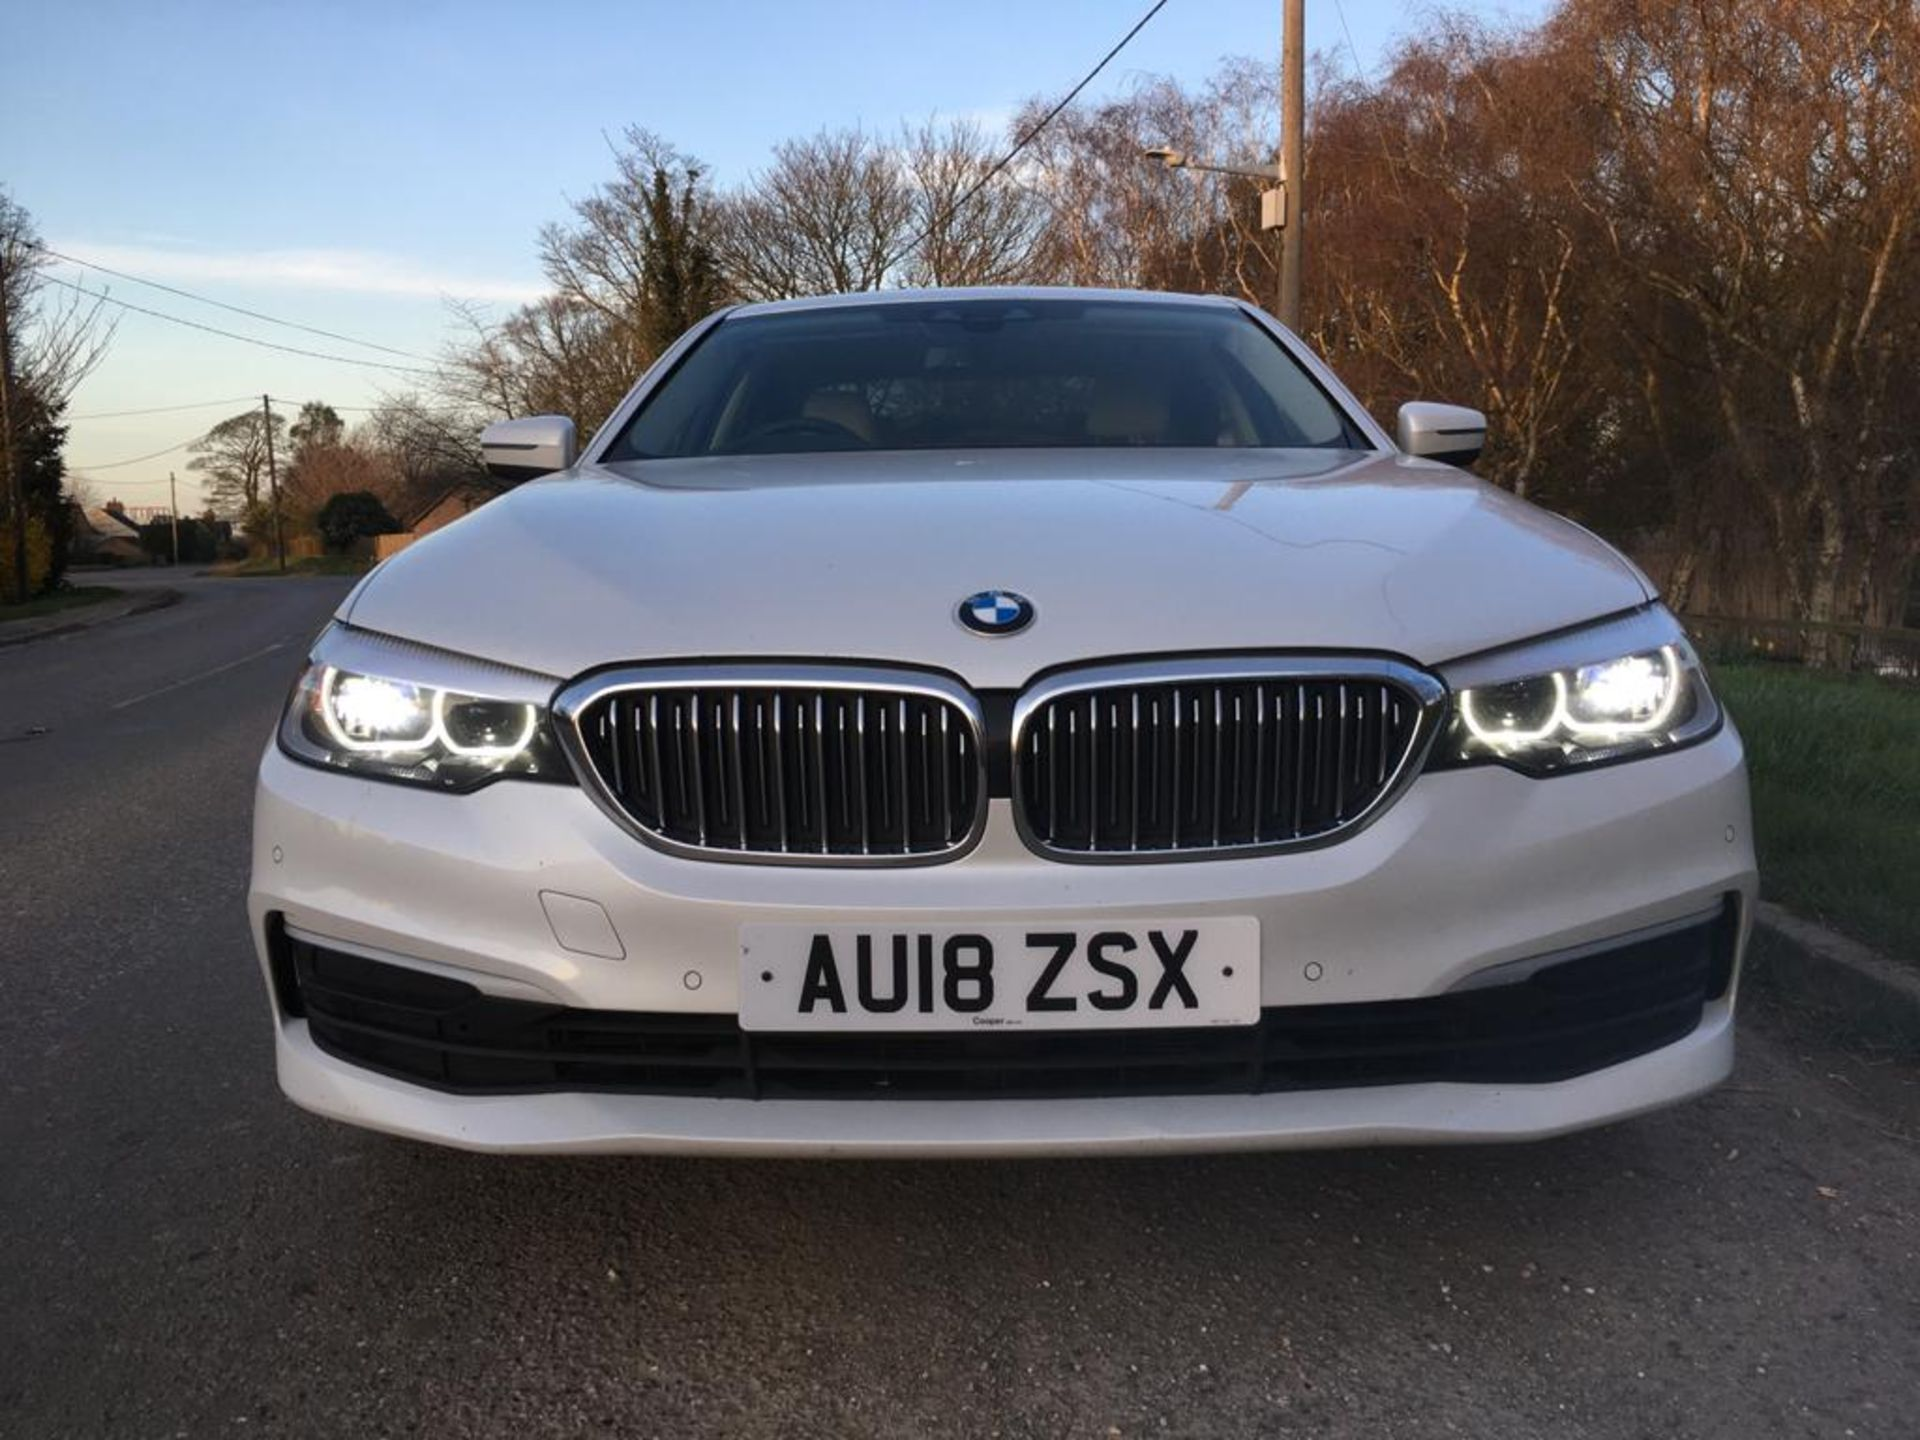 2018 BMW 530E 2.0 SE HYBIRD SALOON AUTOMATIC - Image 2 of 34